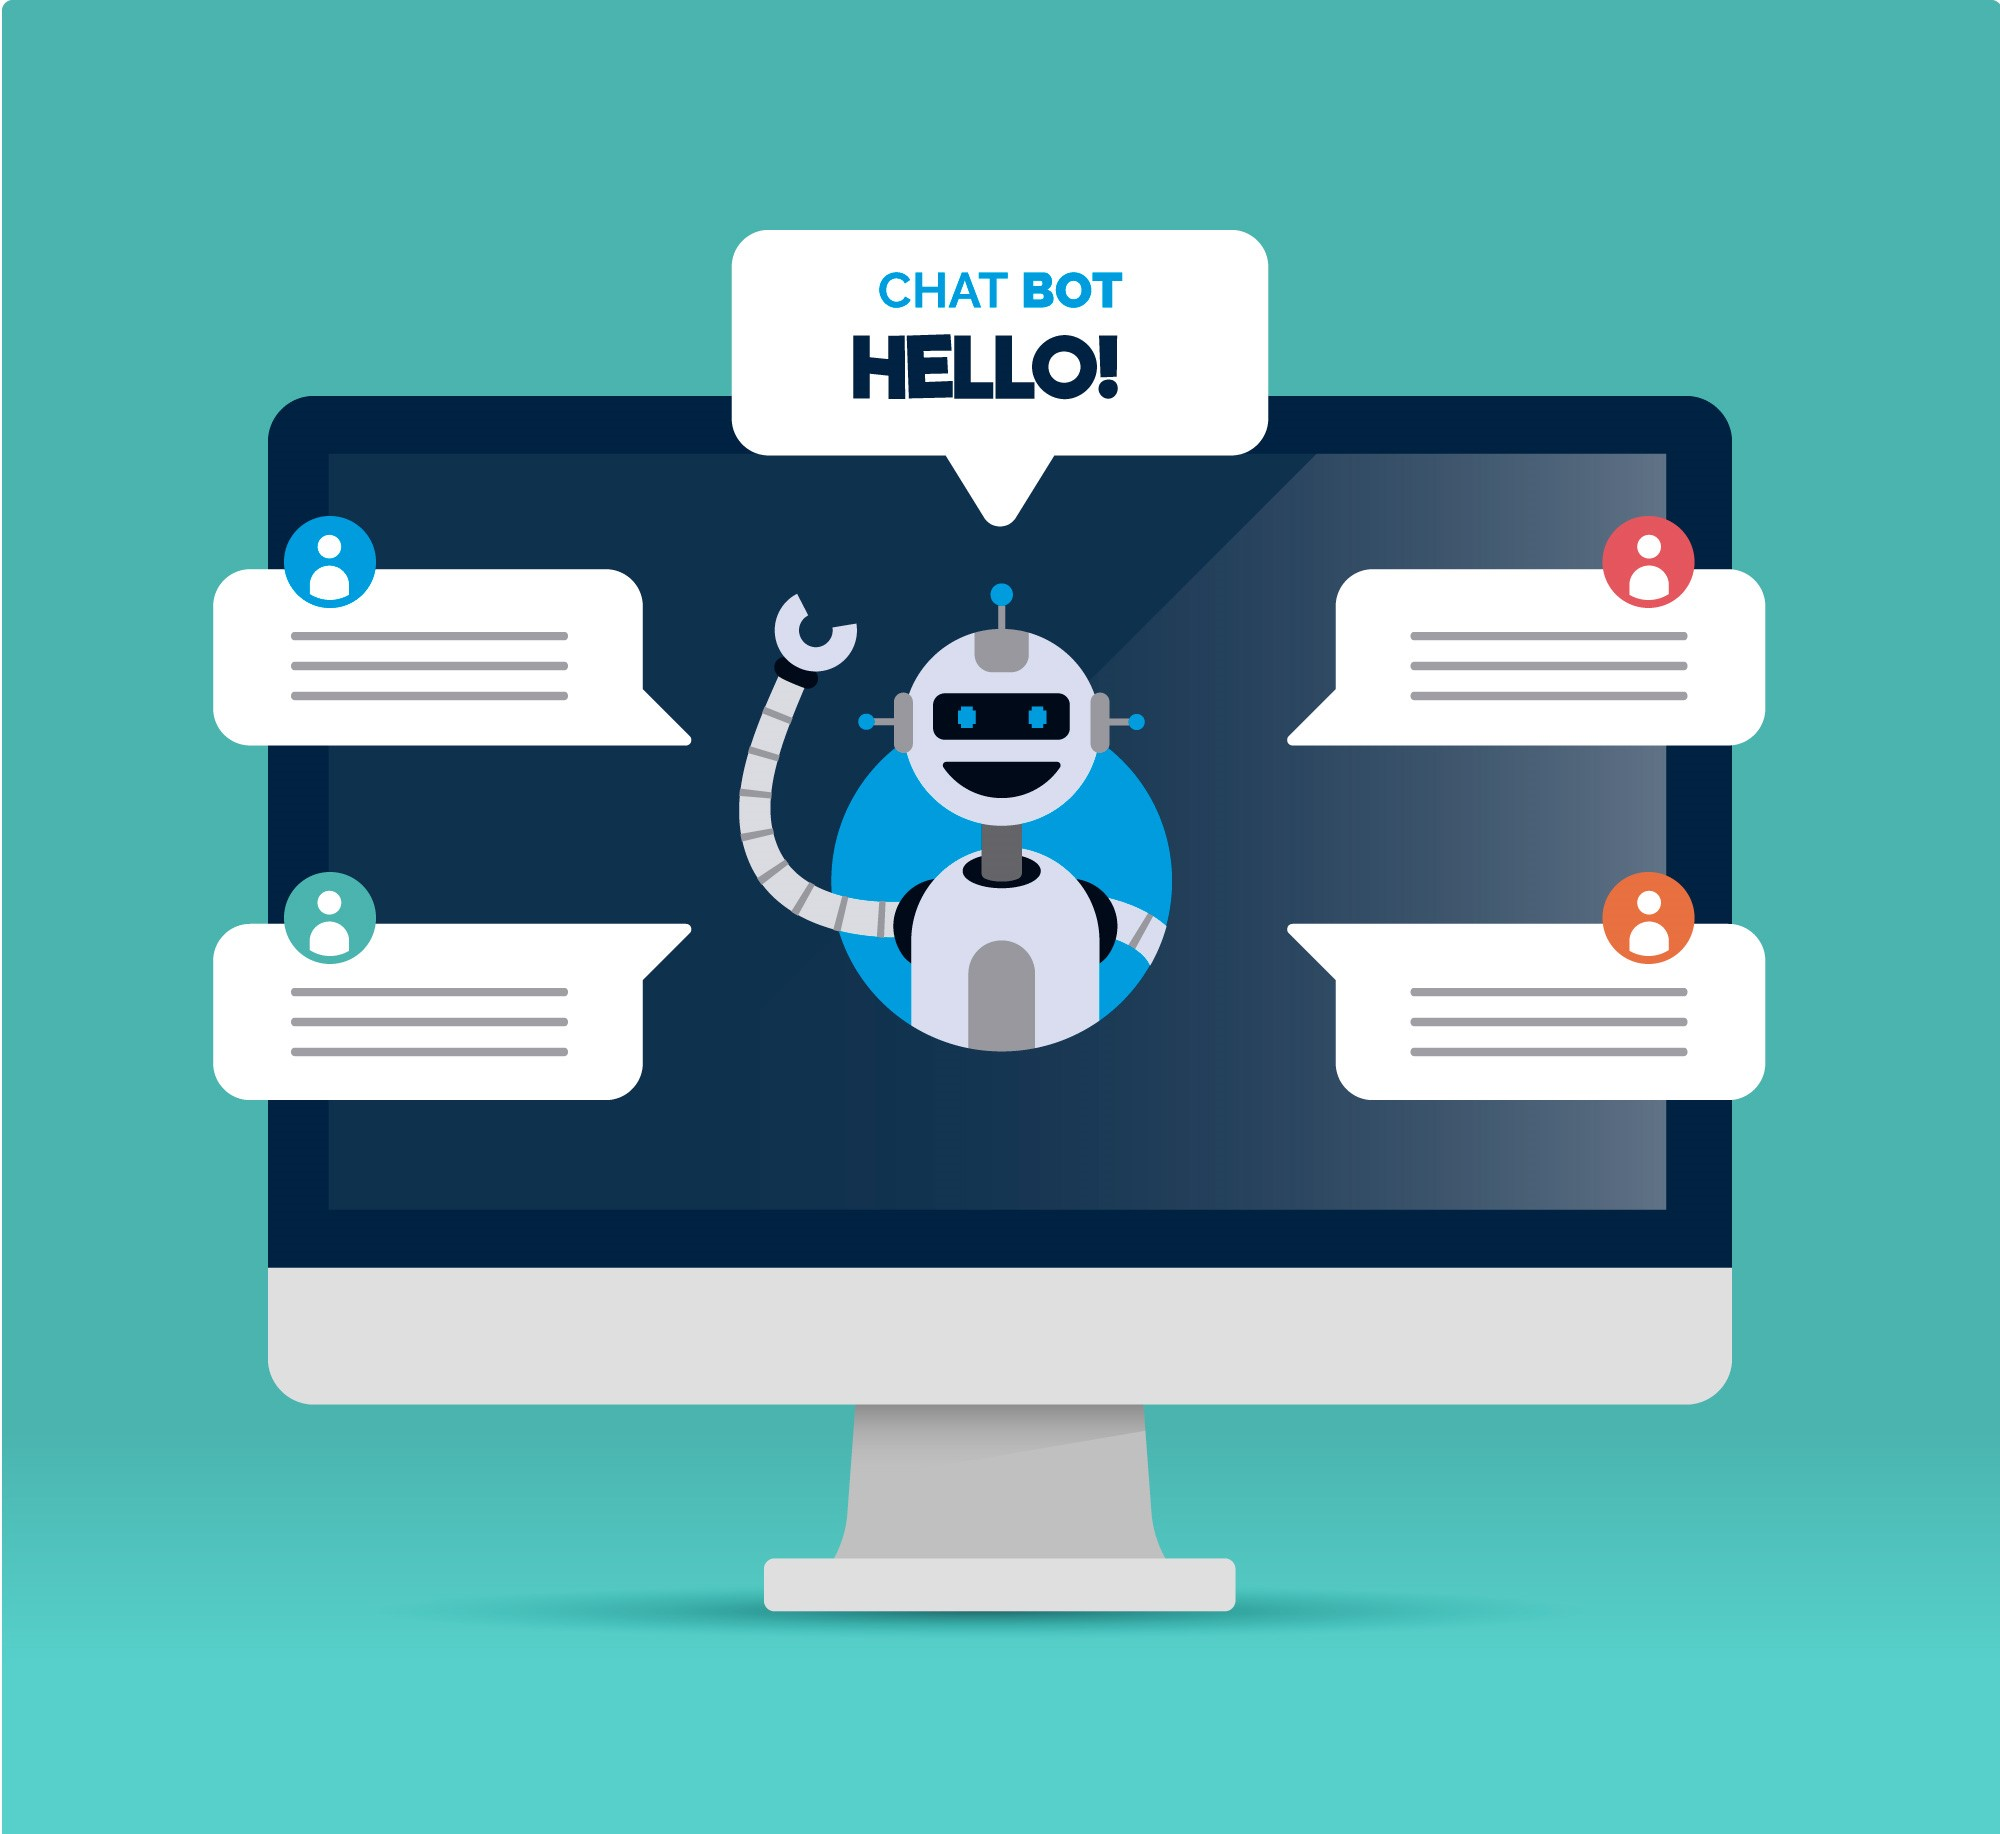 Webchat application is a chatbot used to interact with your website visitors